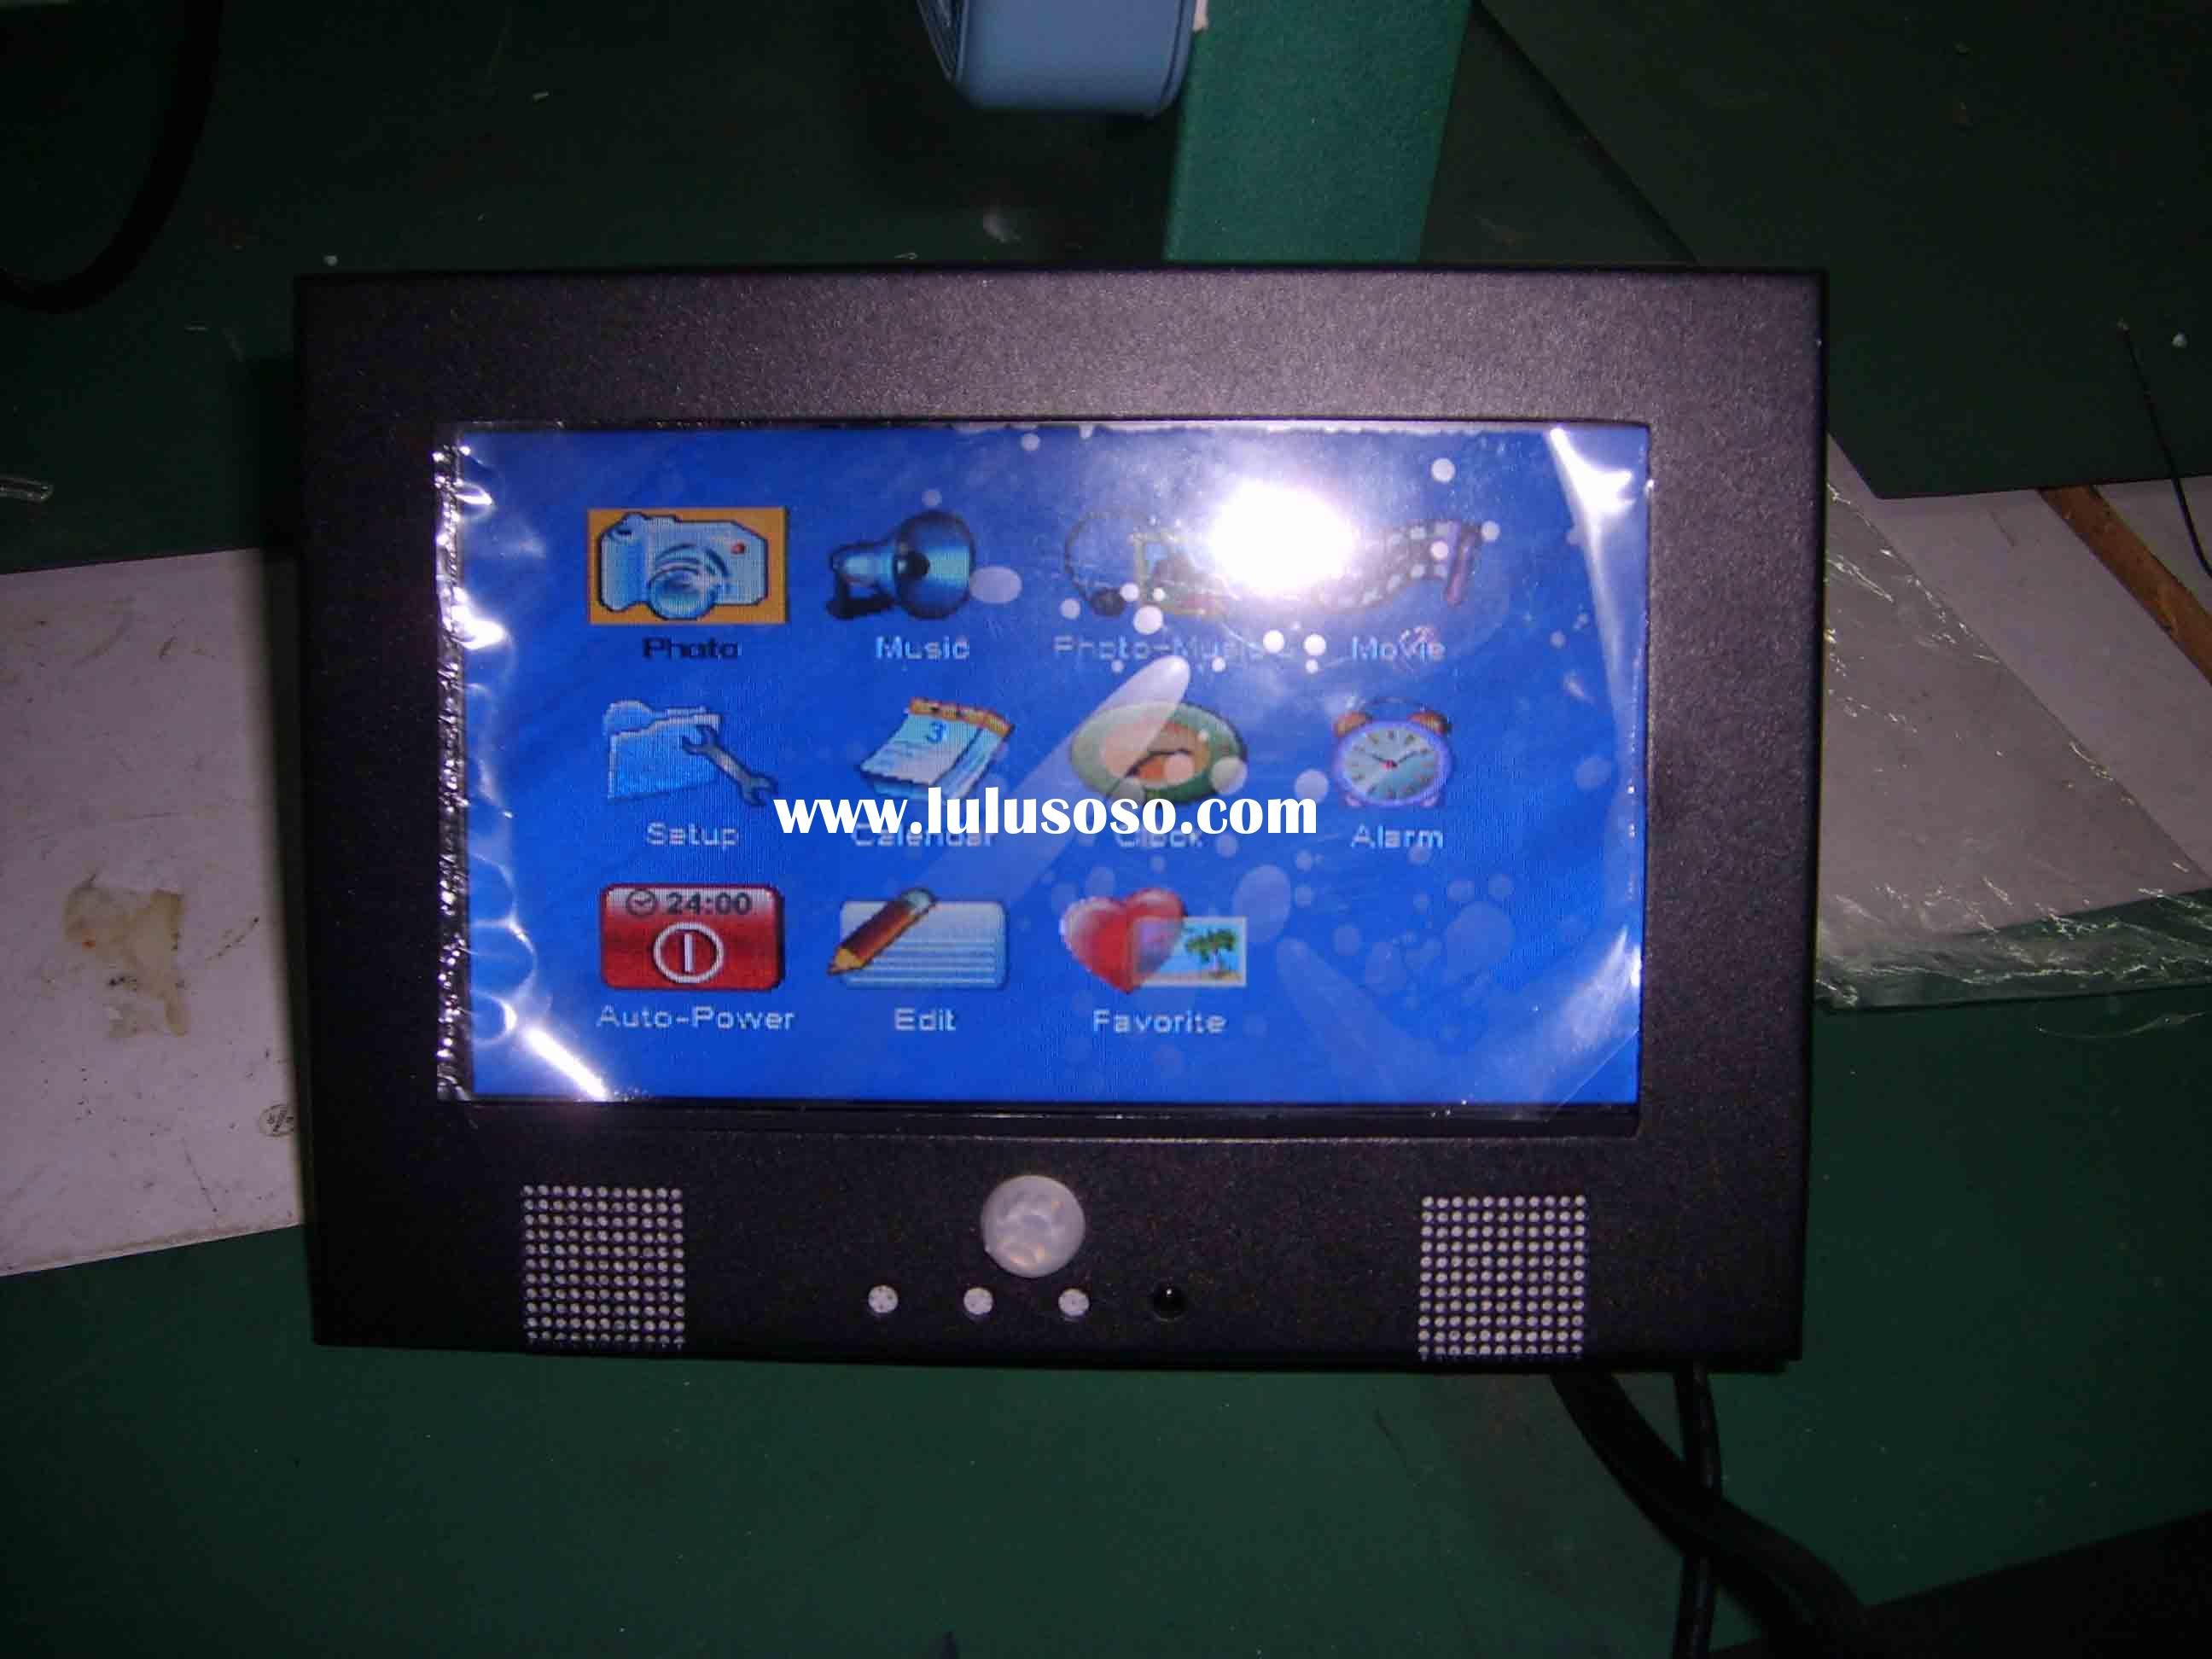 Bus LCD media player